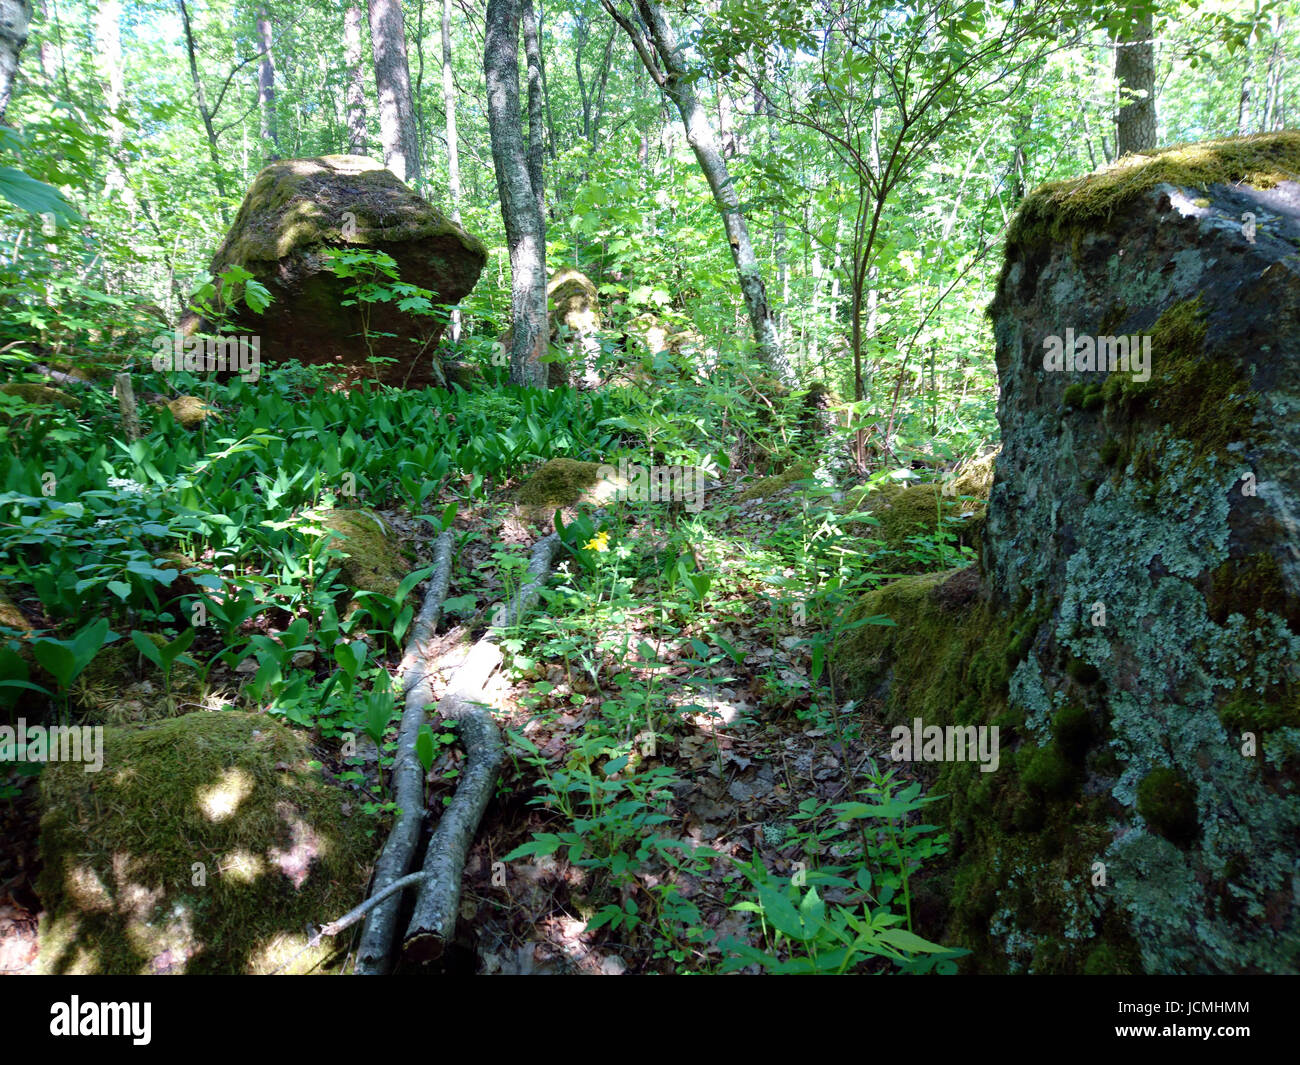 forest in europe - finland - Stock Image